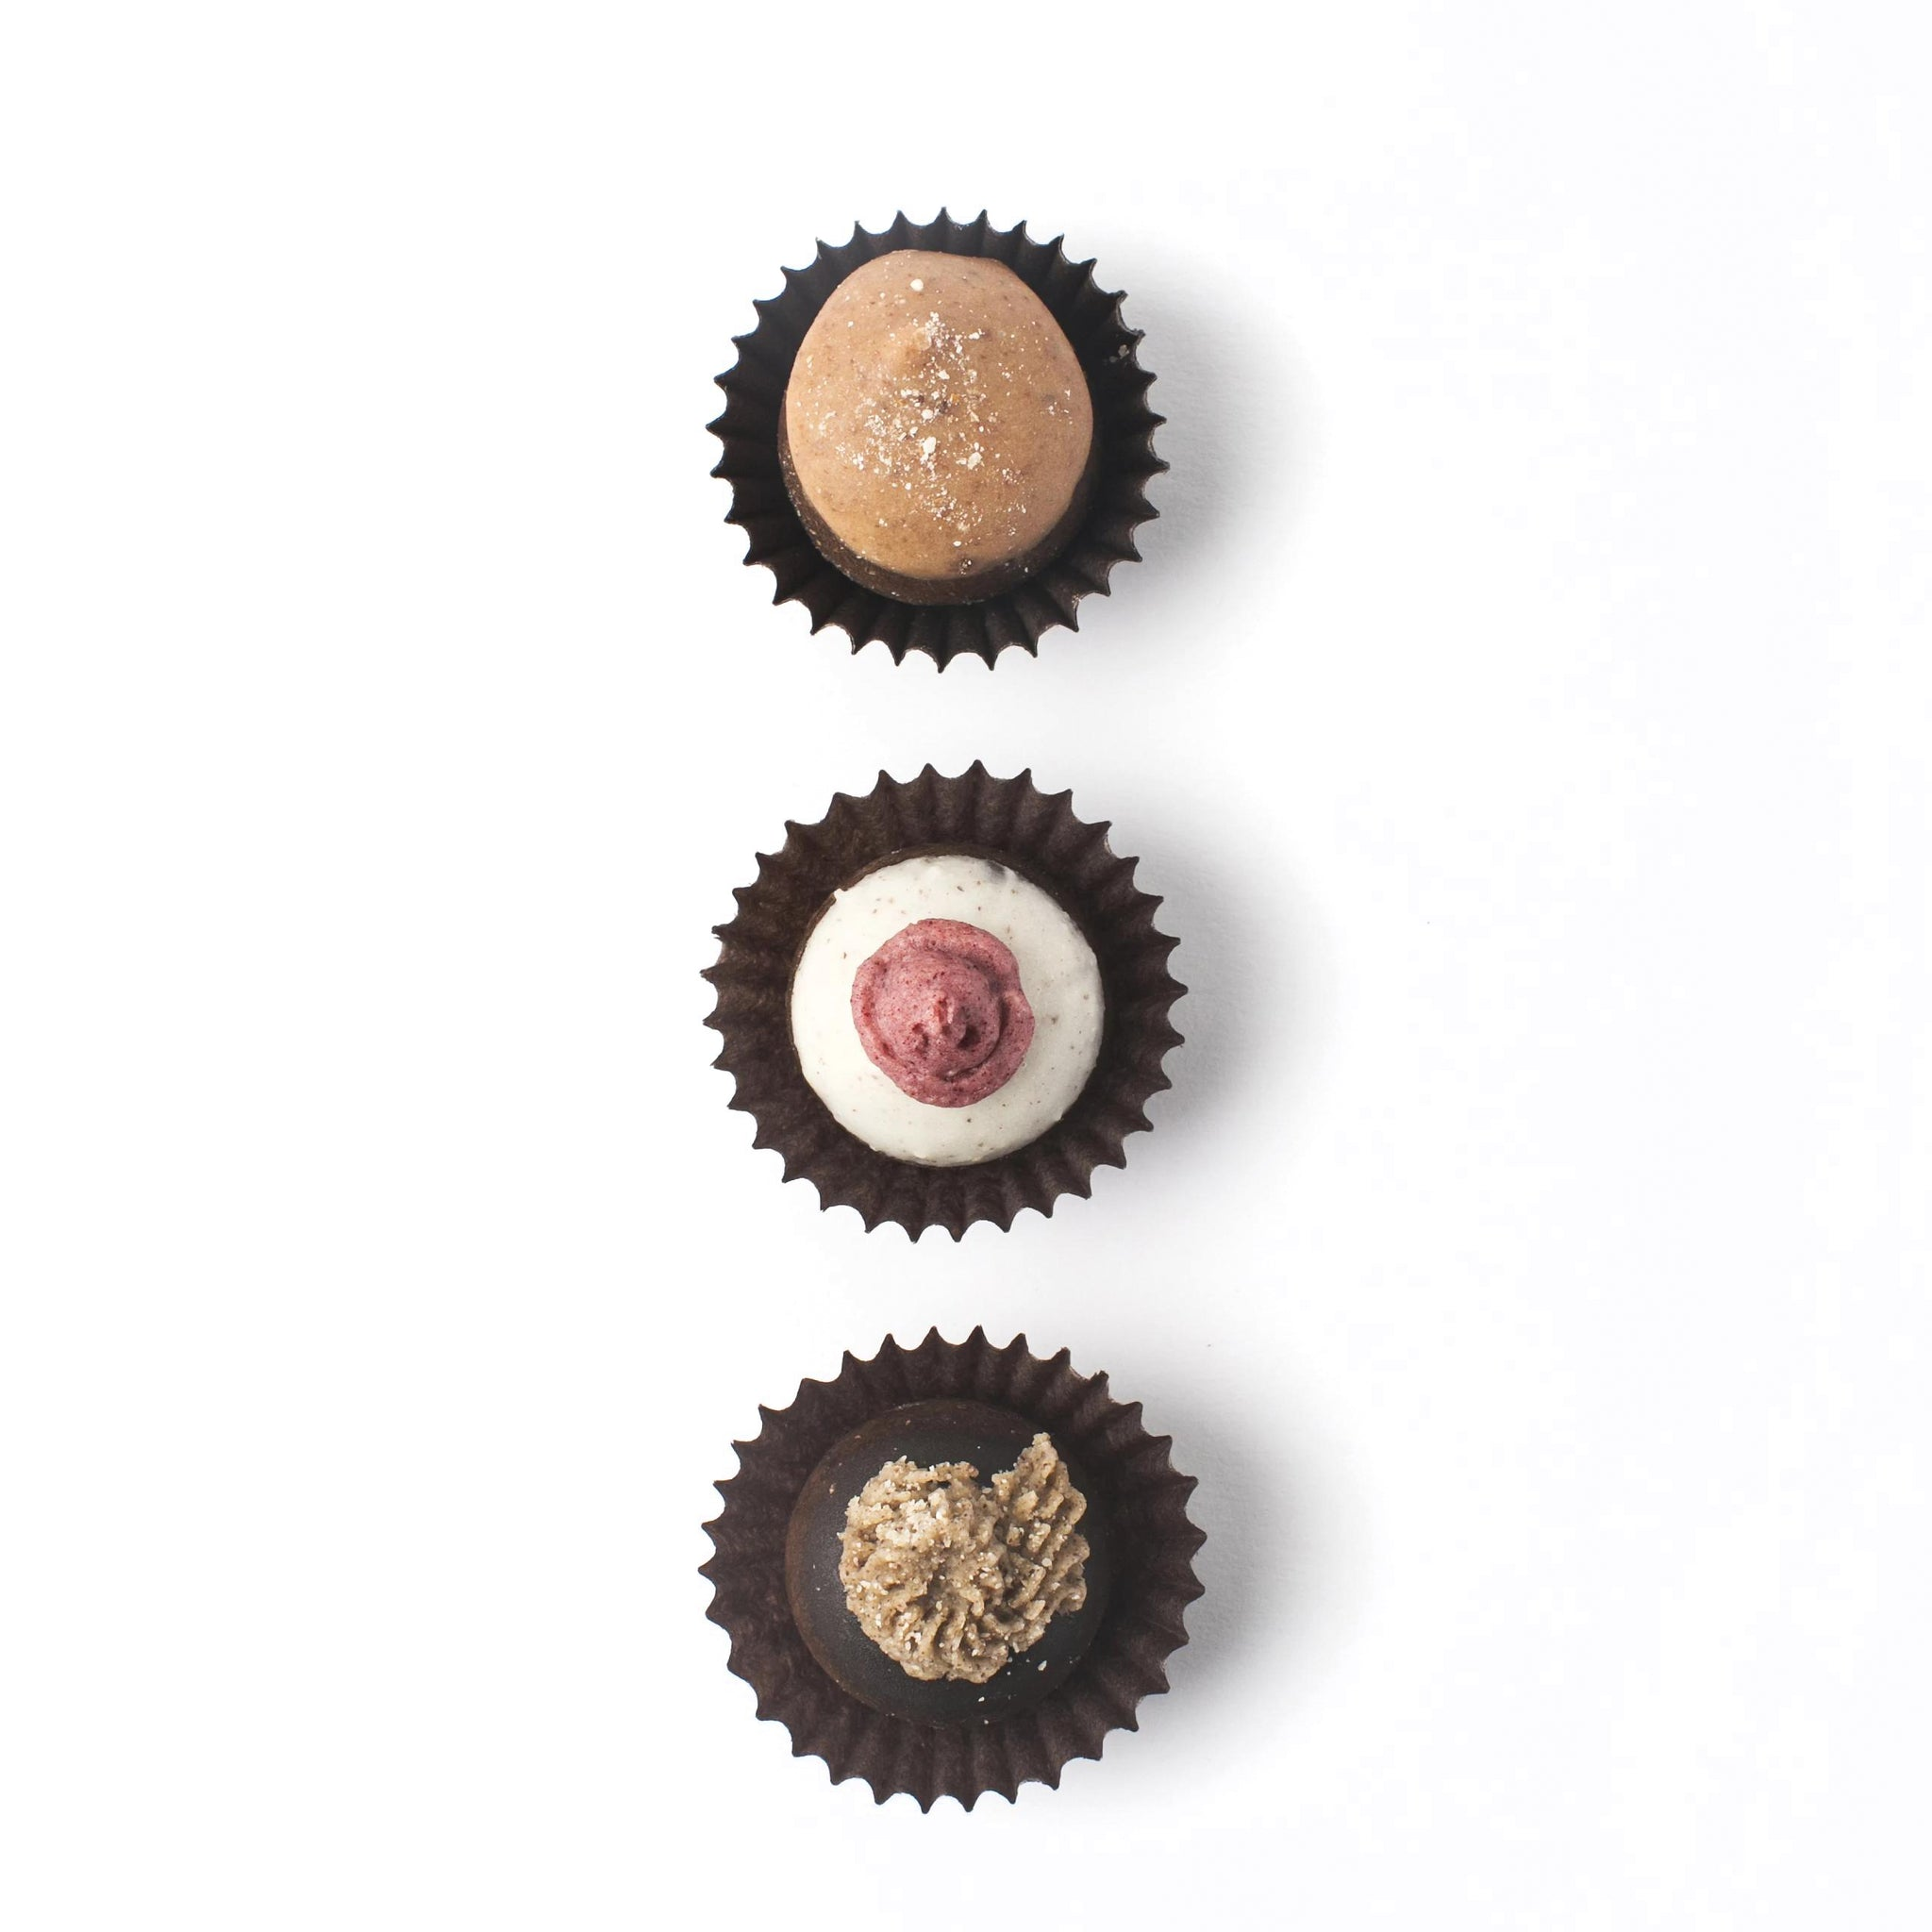 GLOWball Chocolate Truffles (3-pack)